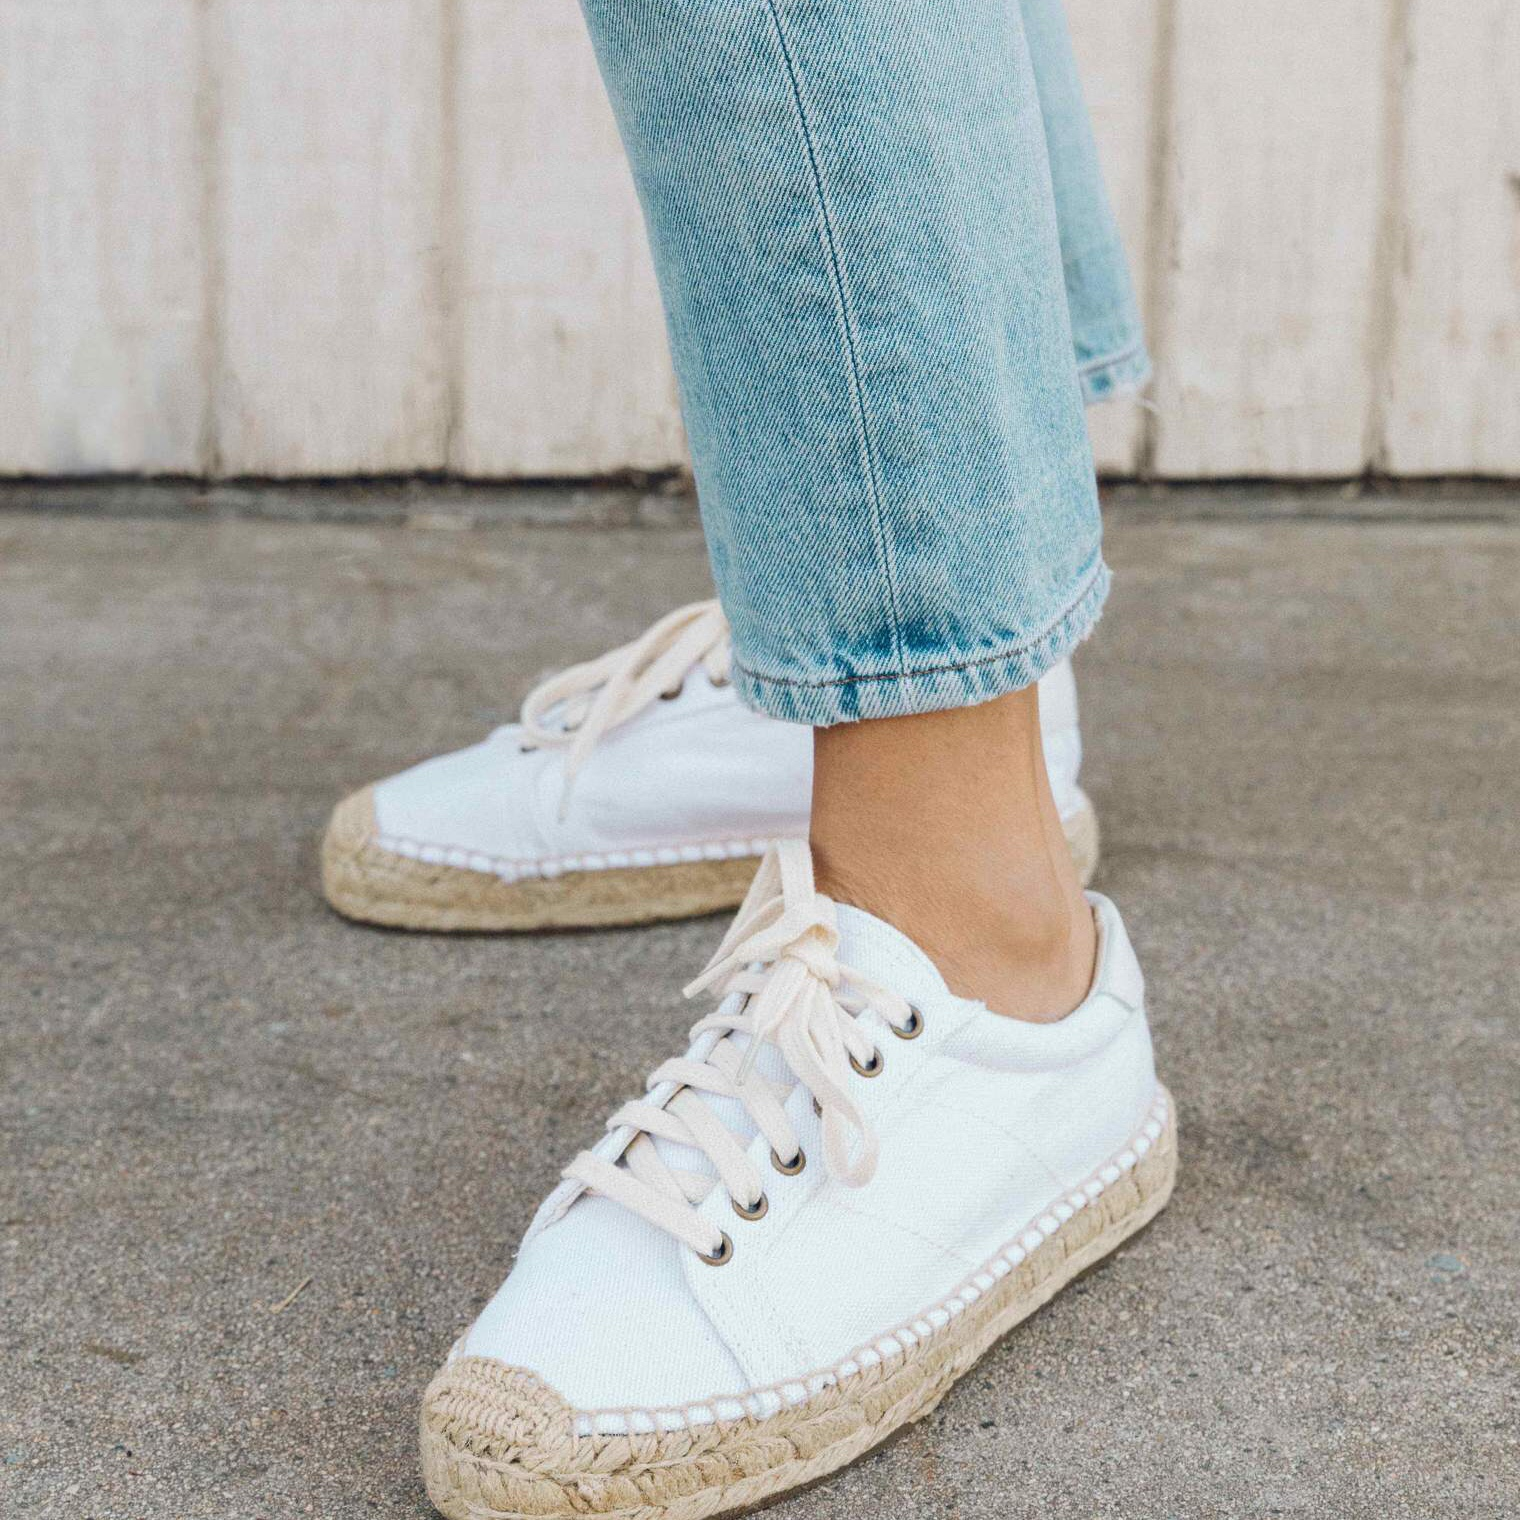 Soludos Espadrille Sneakers New in Box